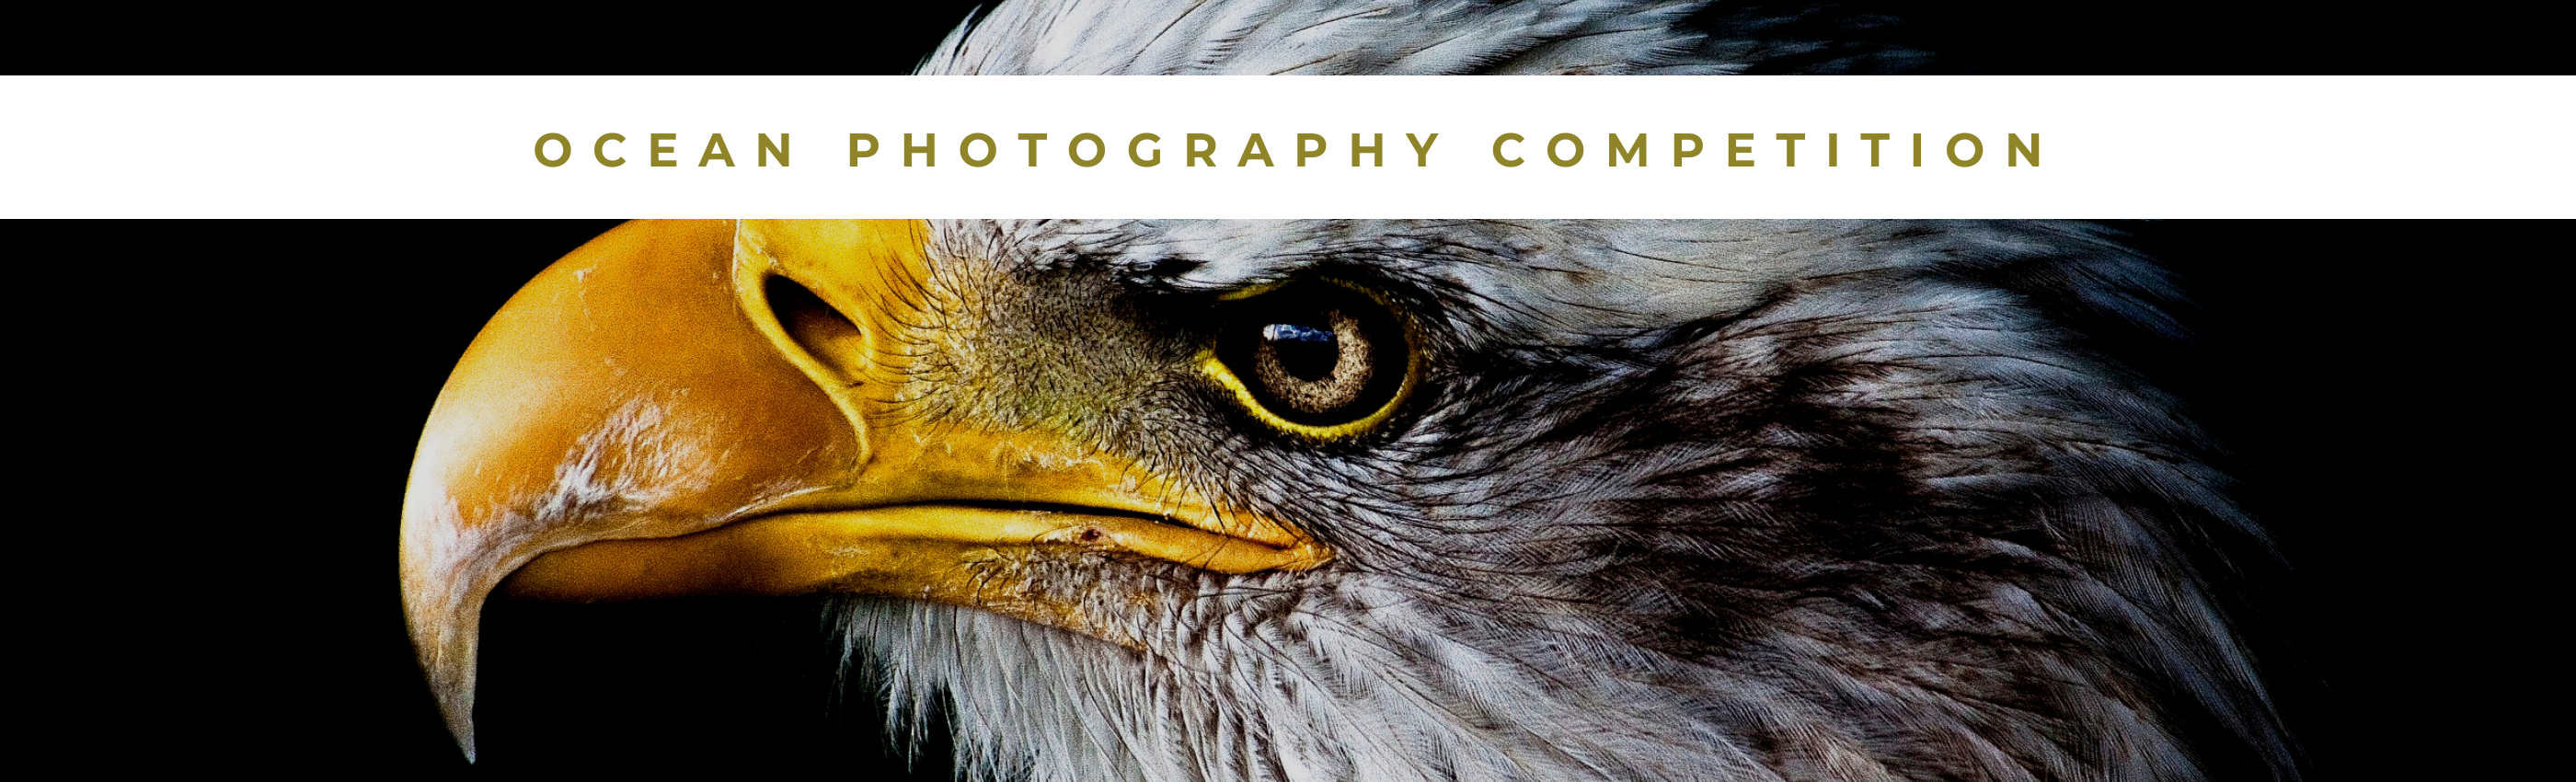 OCEAN Photography Competition - logo